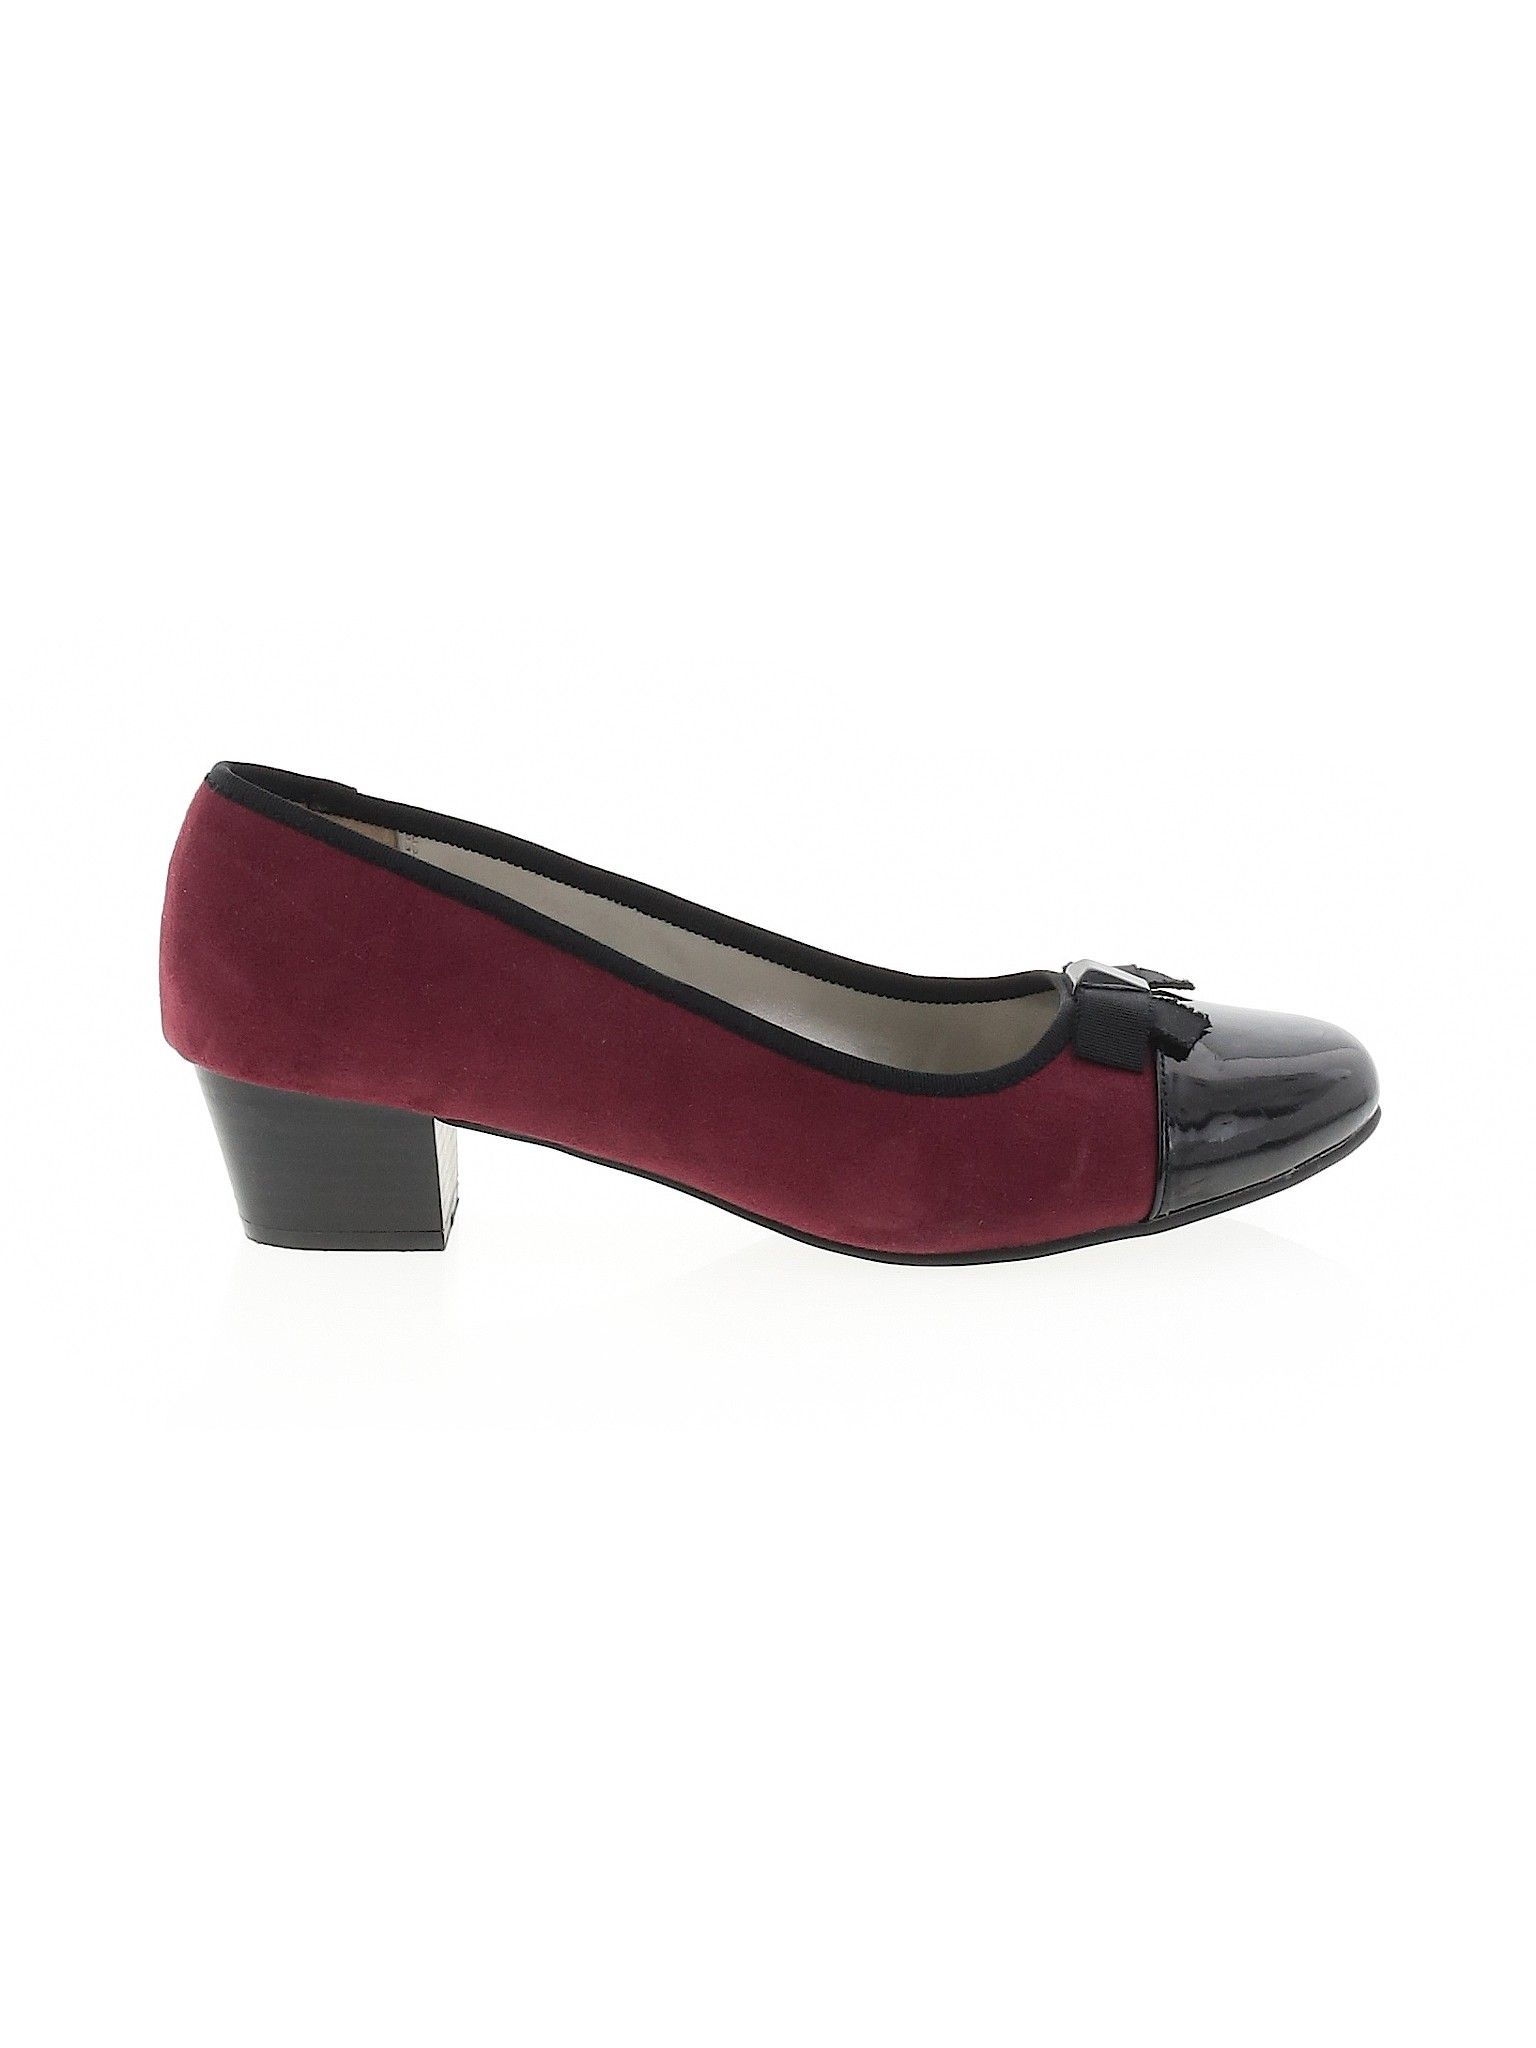 London Fog Heel Burgundy Solid Women S Shoes Size 9 1 2 Women Shoes Second Hand Clothes Heels